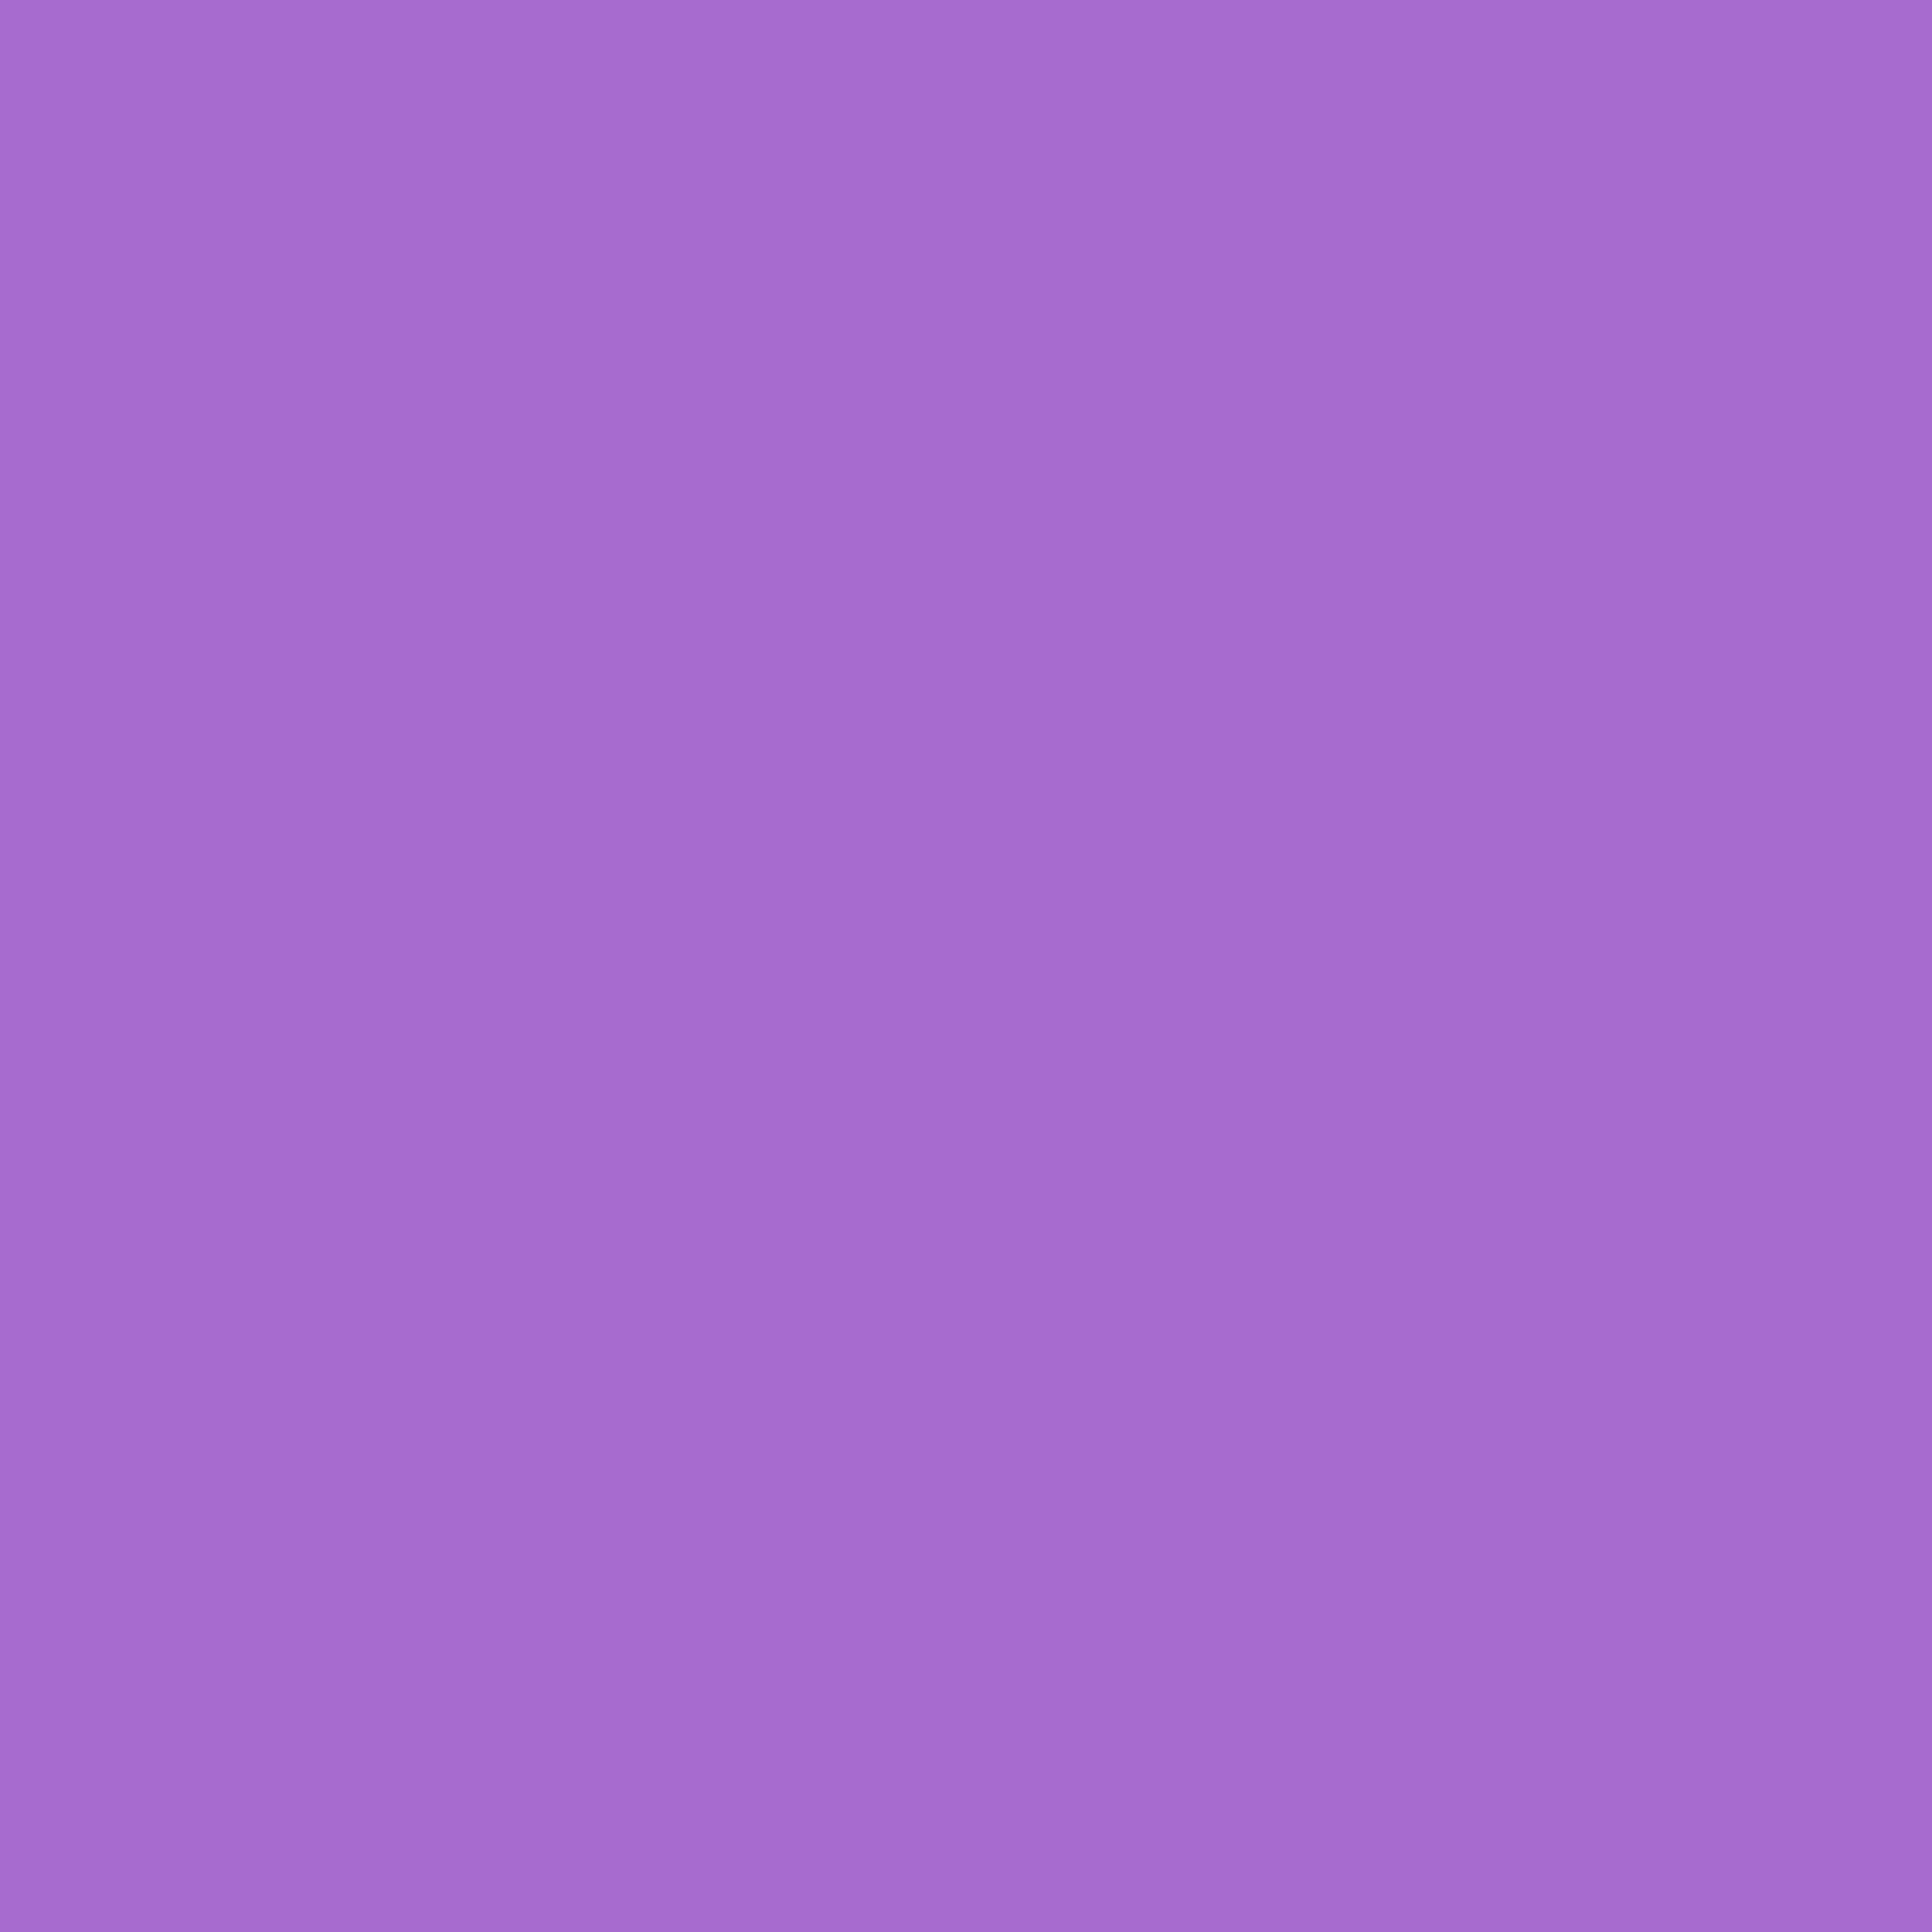 3600x3600 Rich Lavender Solid Color Background